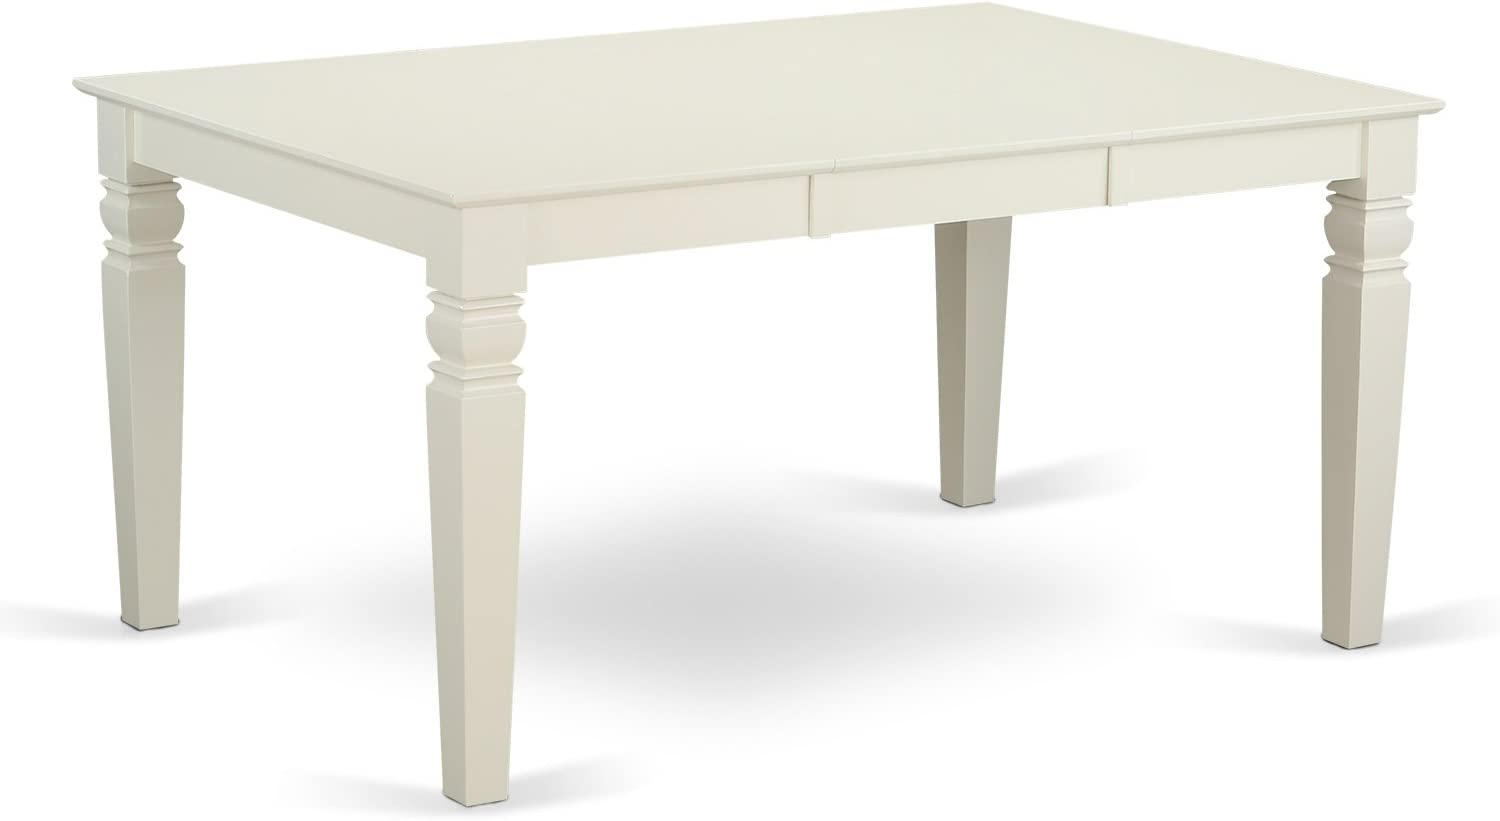 Weston Rectangular Dining Table with 18 in butterfly Leaf in Linen White